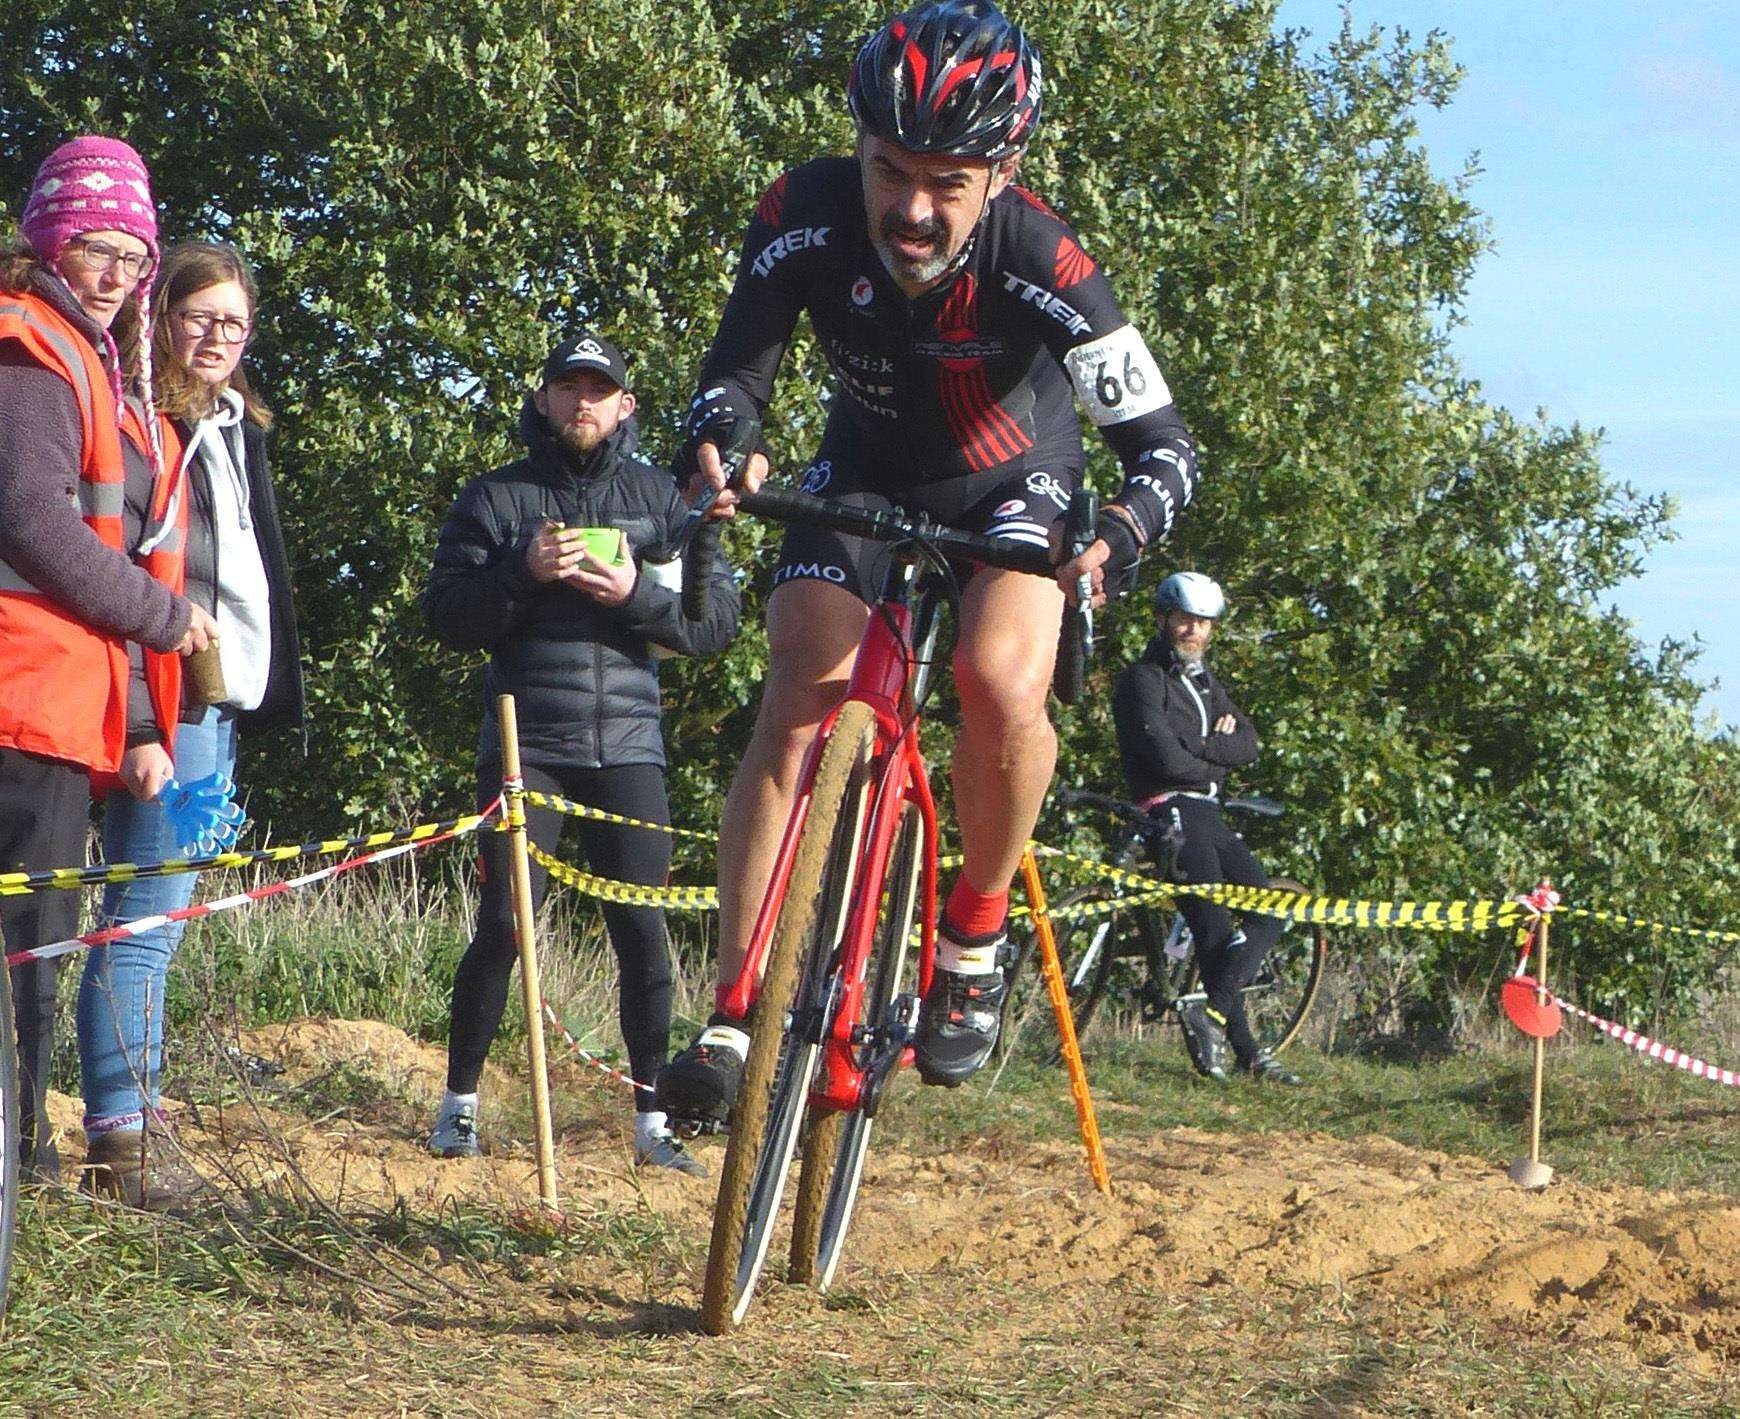 Paul Watson (West Suffolk Whs) in the Thetford Forest MTB races - Picture: Fergus Muir (5263579)